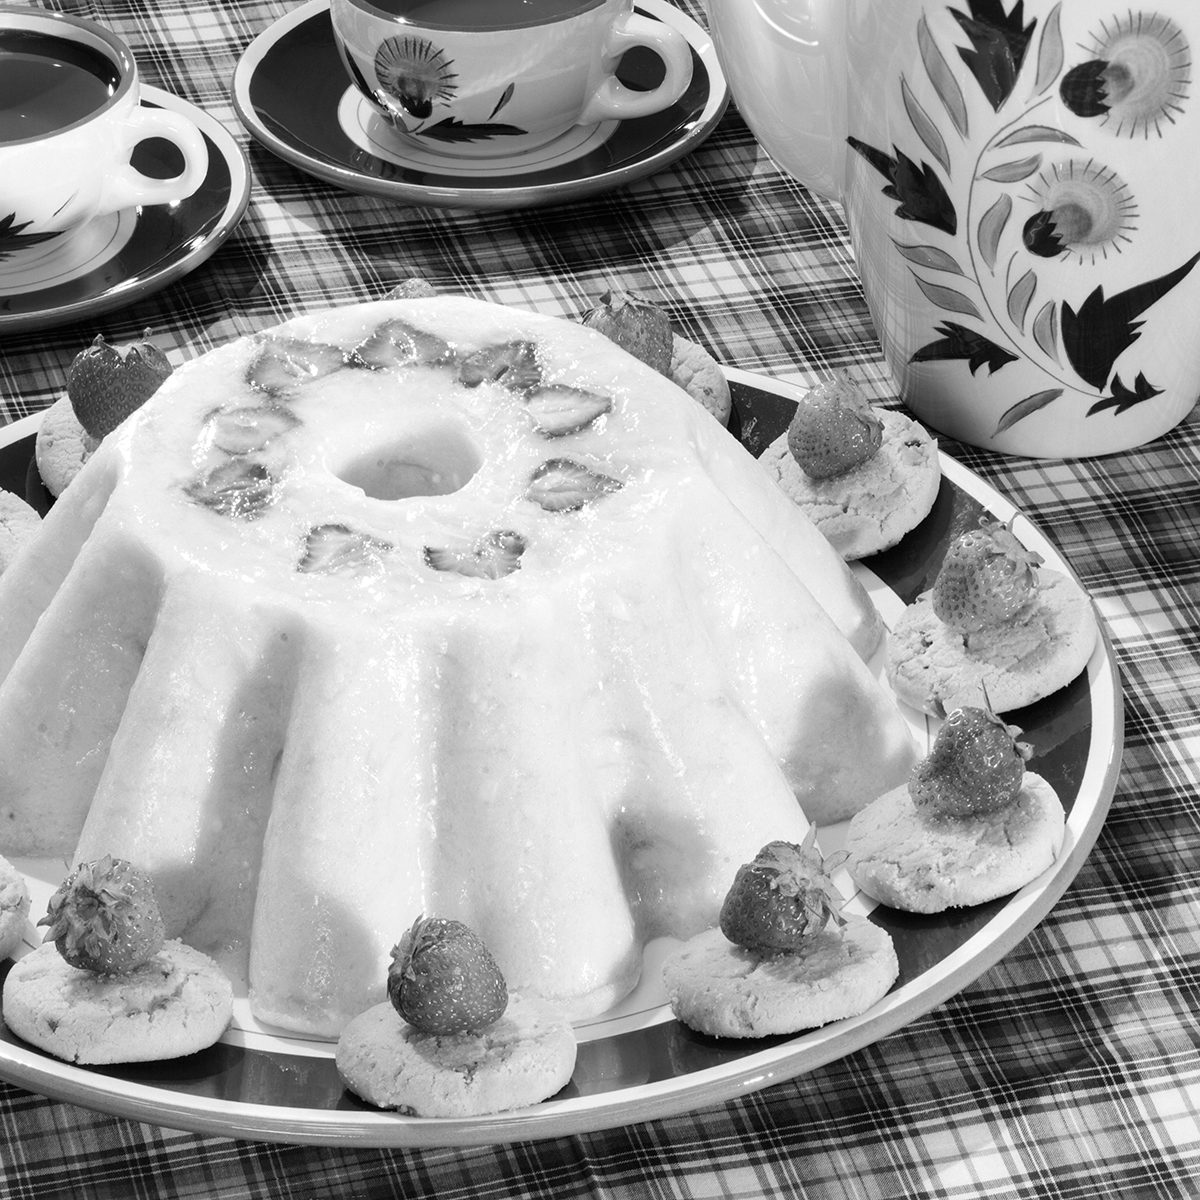 1950s PECAN SANDIES COOKIES AROUND JELLO MOLD WITH STRAWBERRIES DESSERT AND CUPS OF COFFEE (Photo by L. Fritz/ClassicStock/Getty Images)